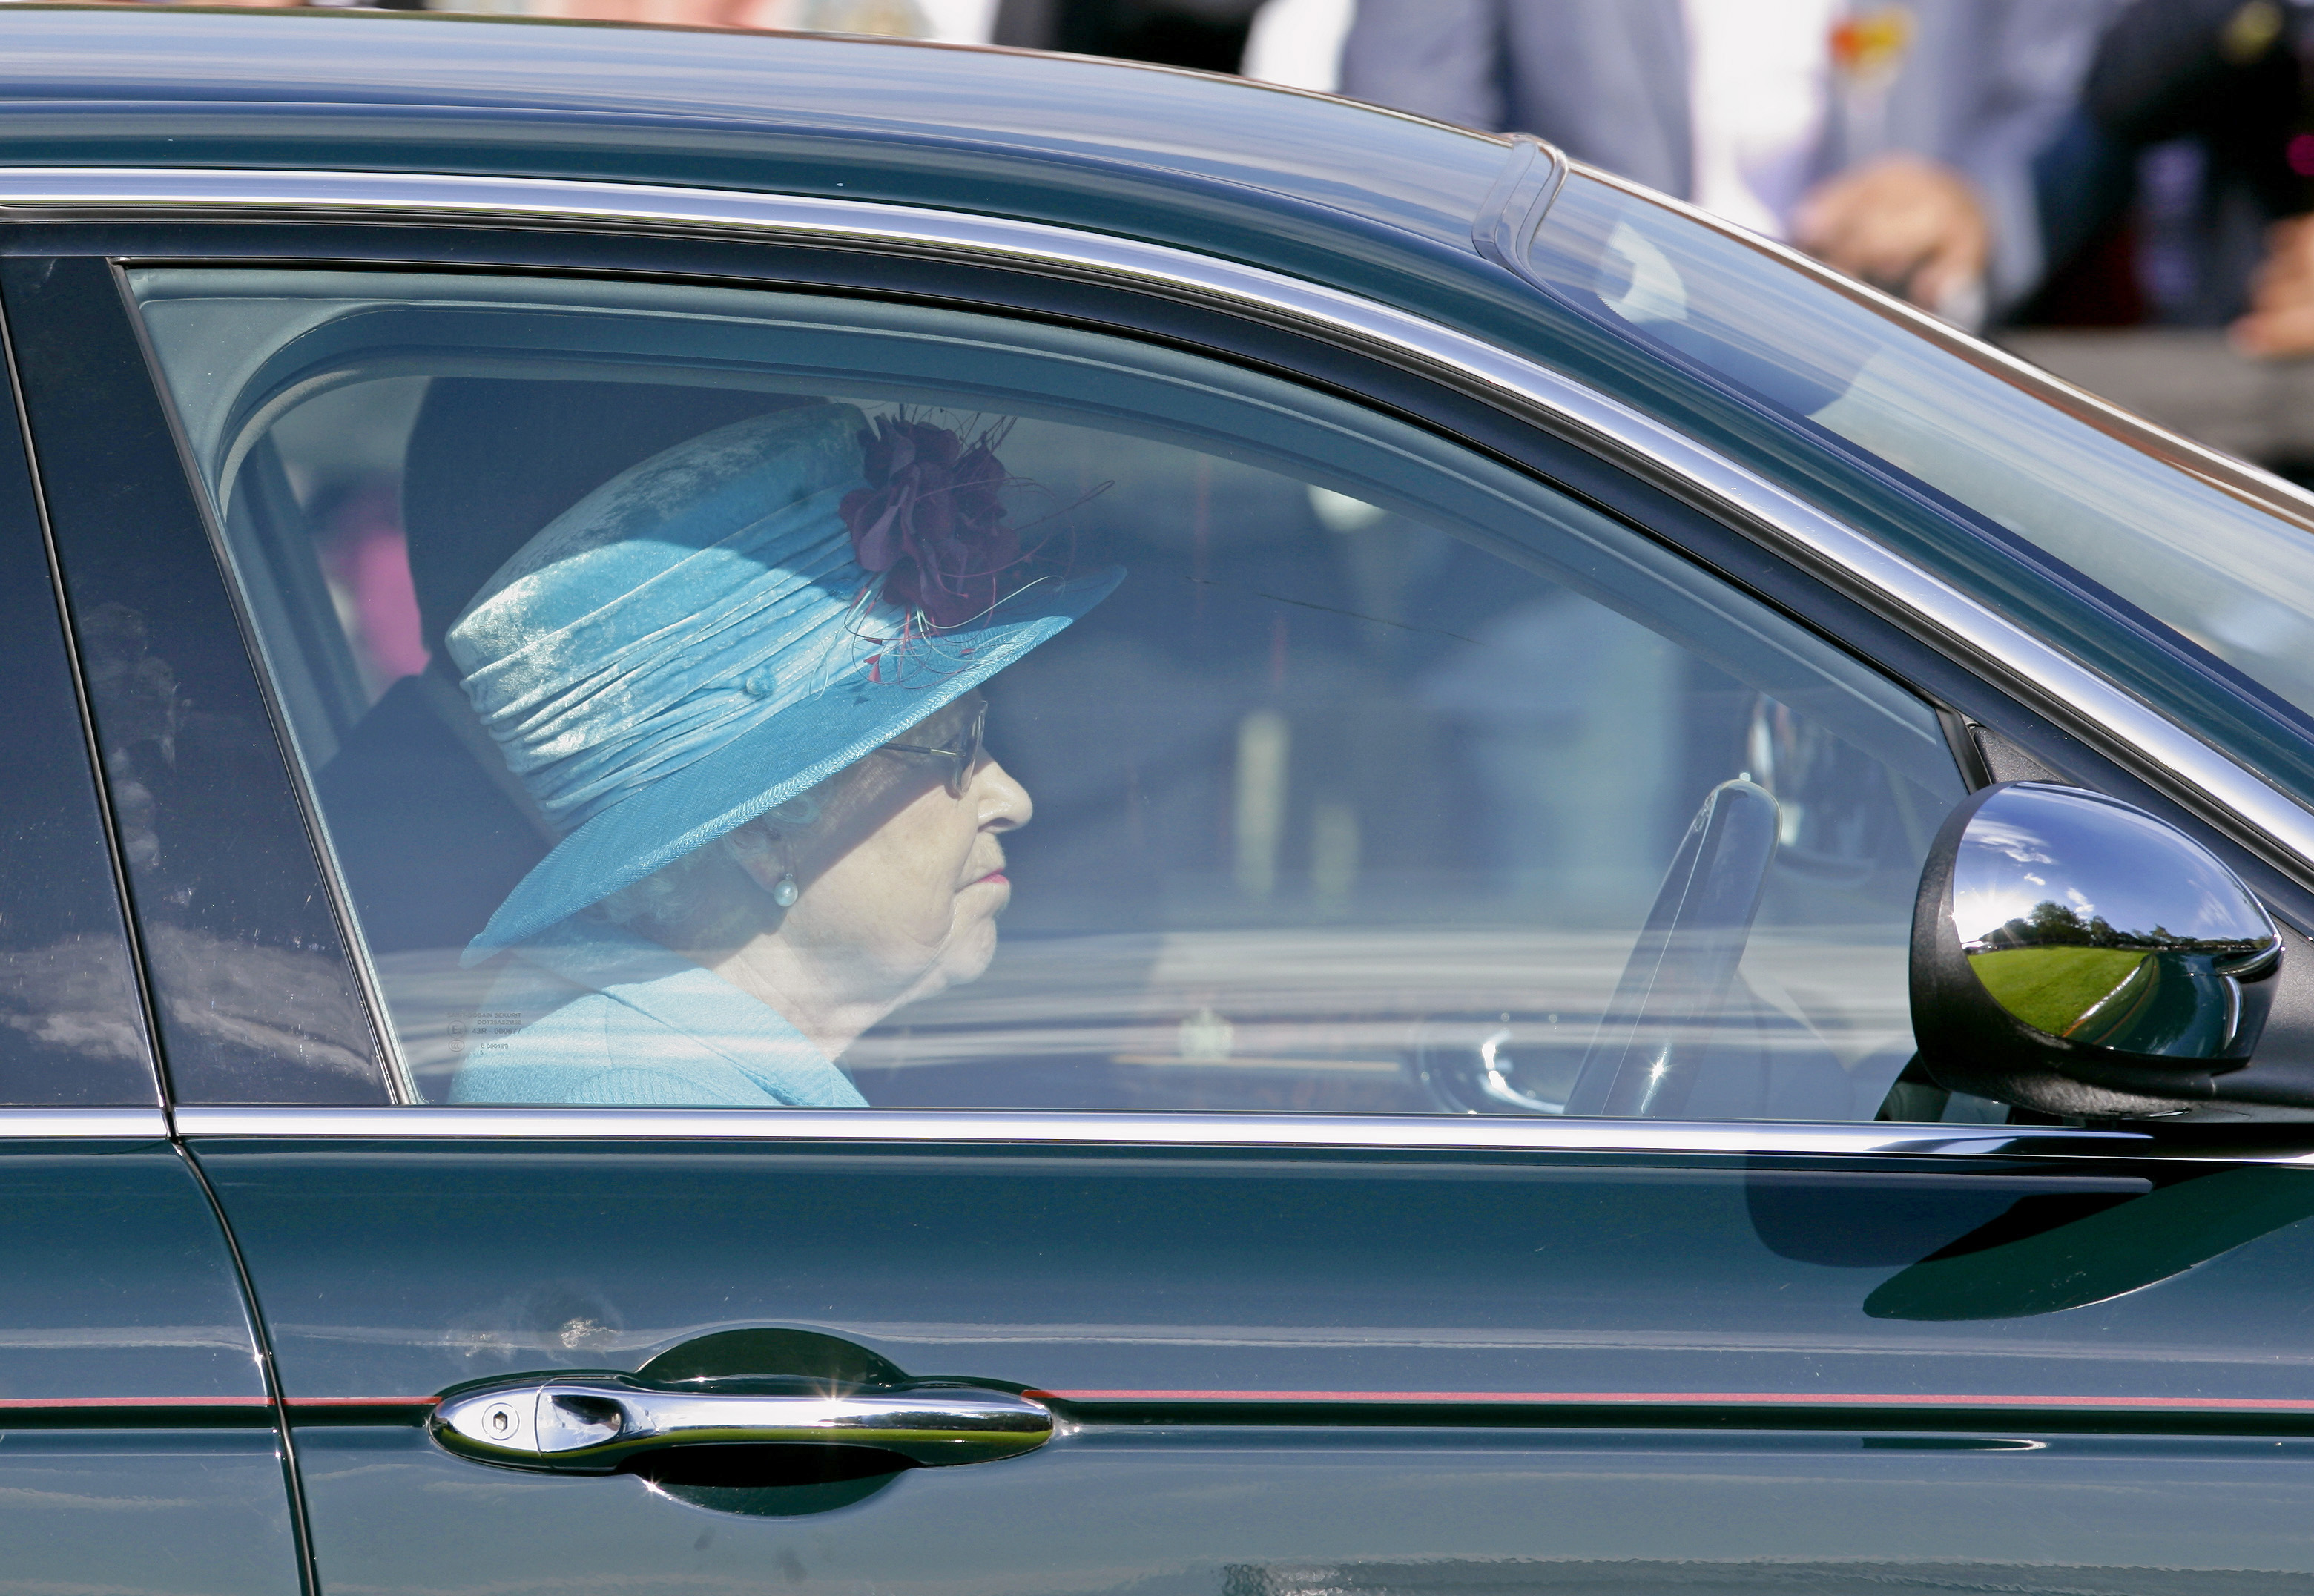 EGHAM, UNITED KINGDOM - JUNE 13: (EMBARGOED FOR PUBLICATION IN UK NEWSPAPERS UNTIL 48 HOURS AFTER CREATE DATE AND TIME) HM Queen Elizabeth II drives her Jaguar car as she leaves after watching the the final of the Harcourt Developments Queen's Cup polo tournament at Guards Polo Club on June 13, 2010 in Egham, England. (Photo by Indigo/Getty Images)